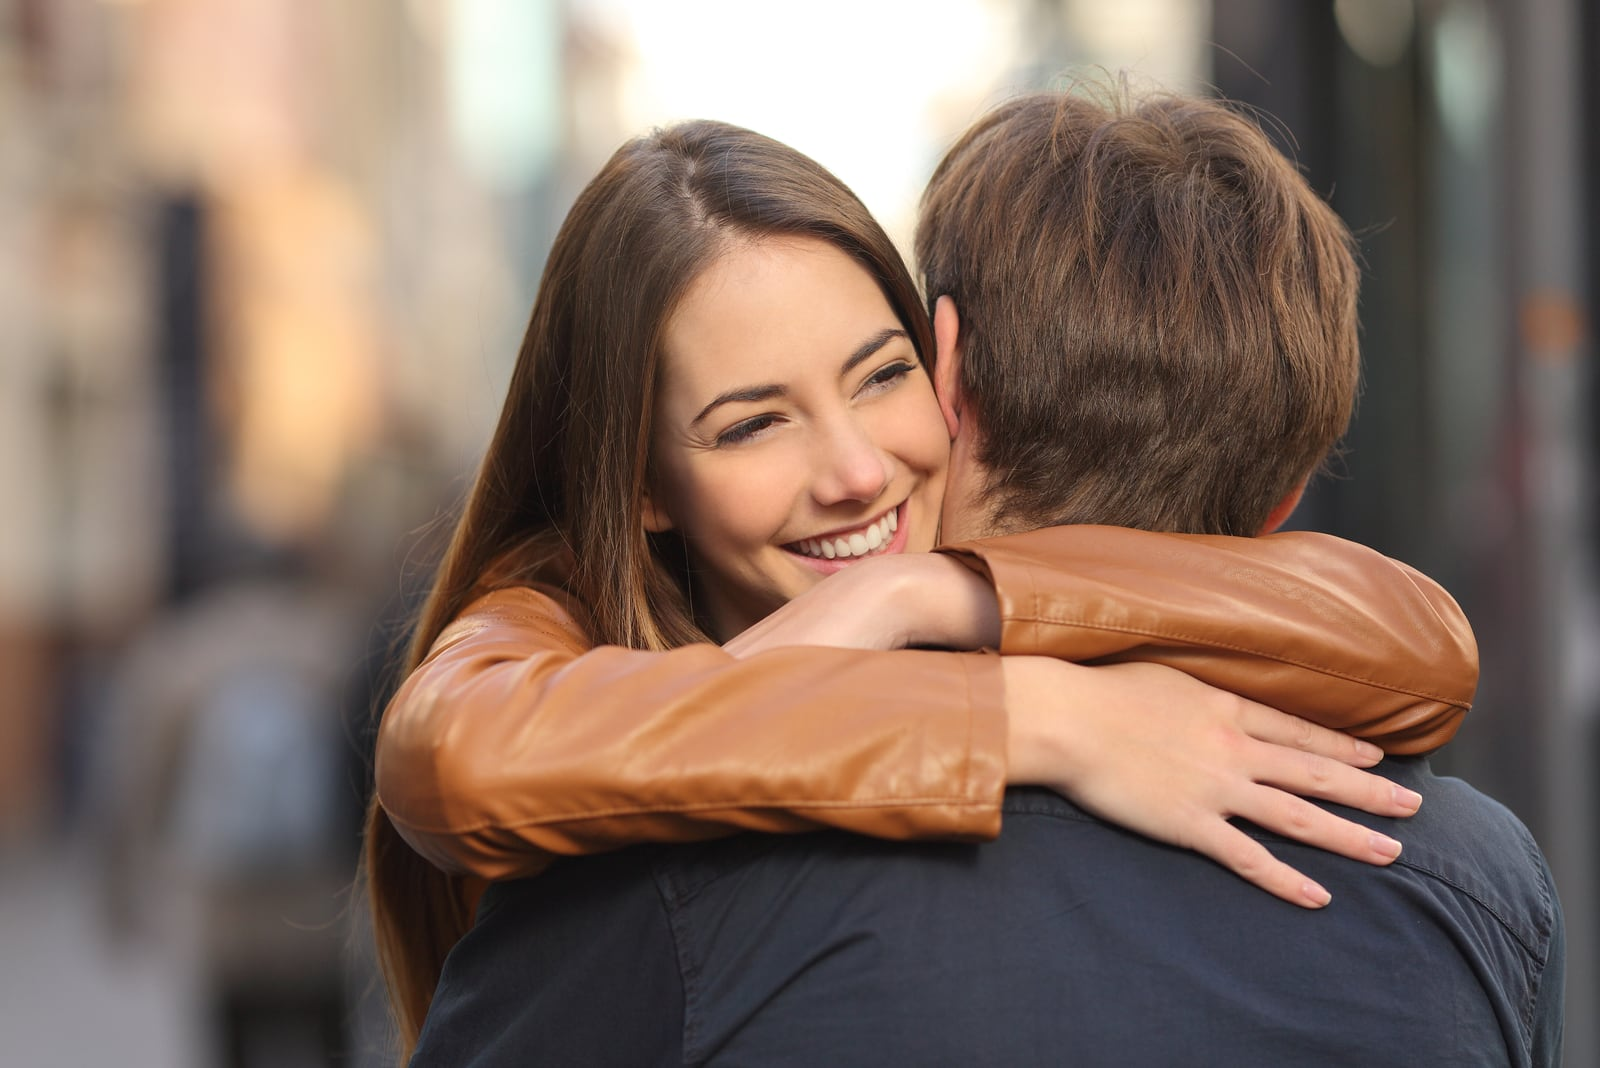 smiling woman in jacket hugging man